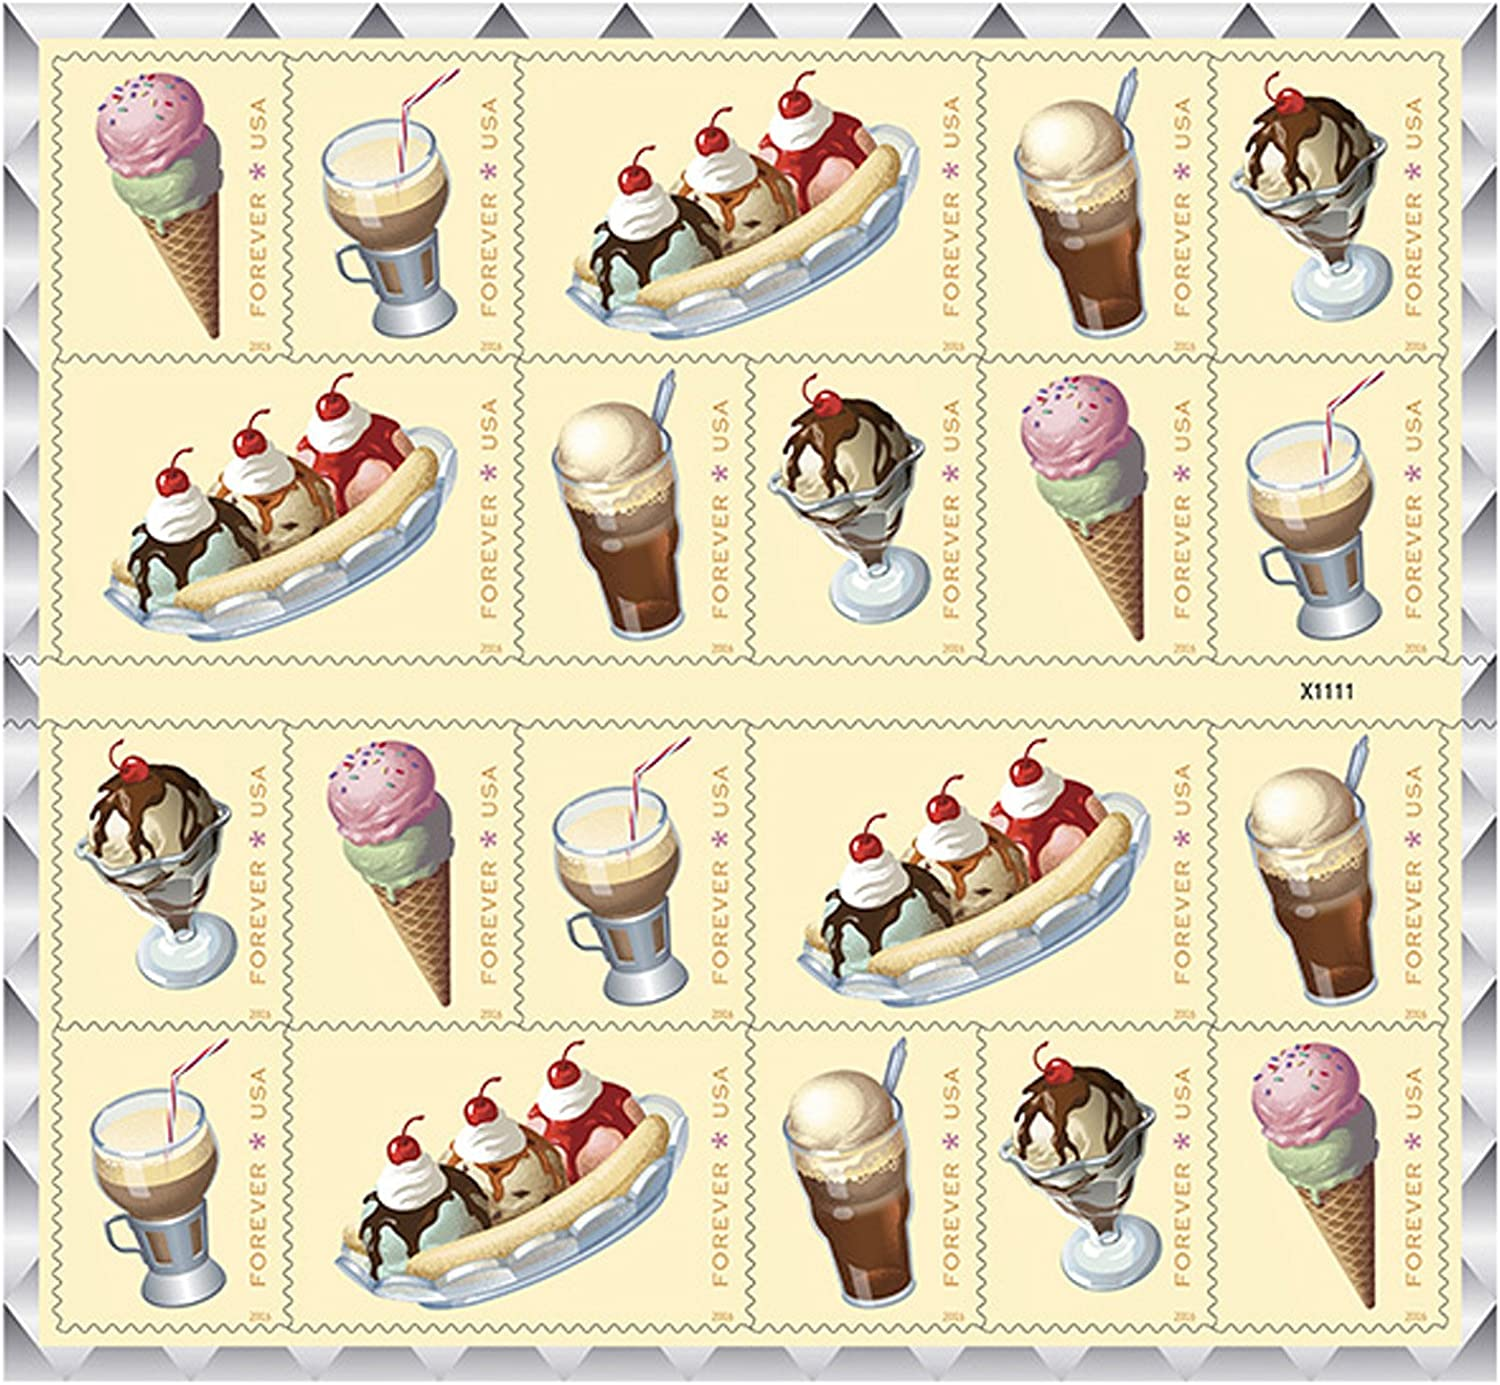 Soda Fountain Favorites USPS Forever First Class Postage Stamp Parties Celebrations Weddings Showers Icecream 1 sheet of 20 Stamps